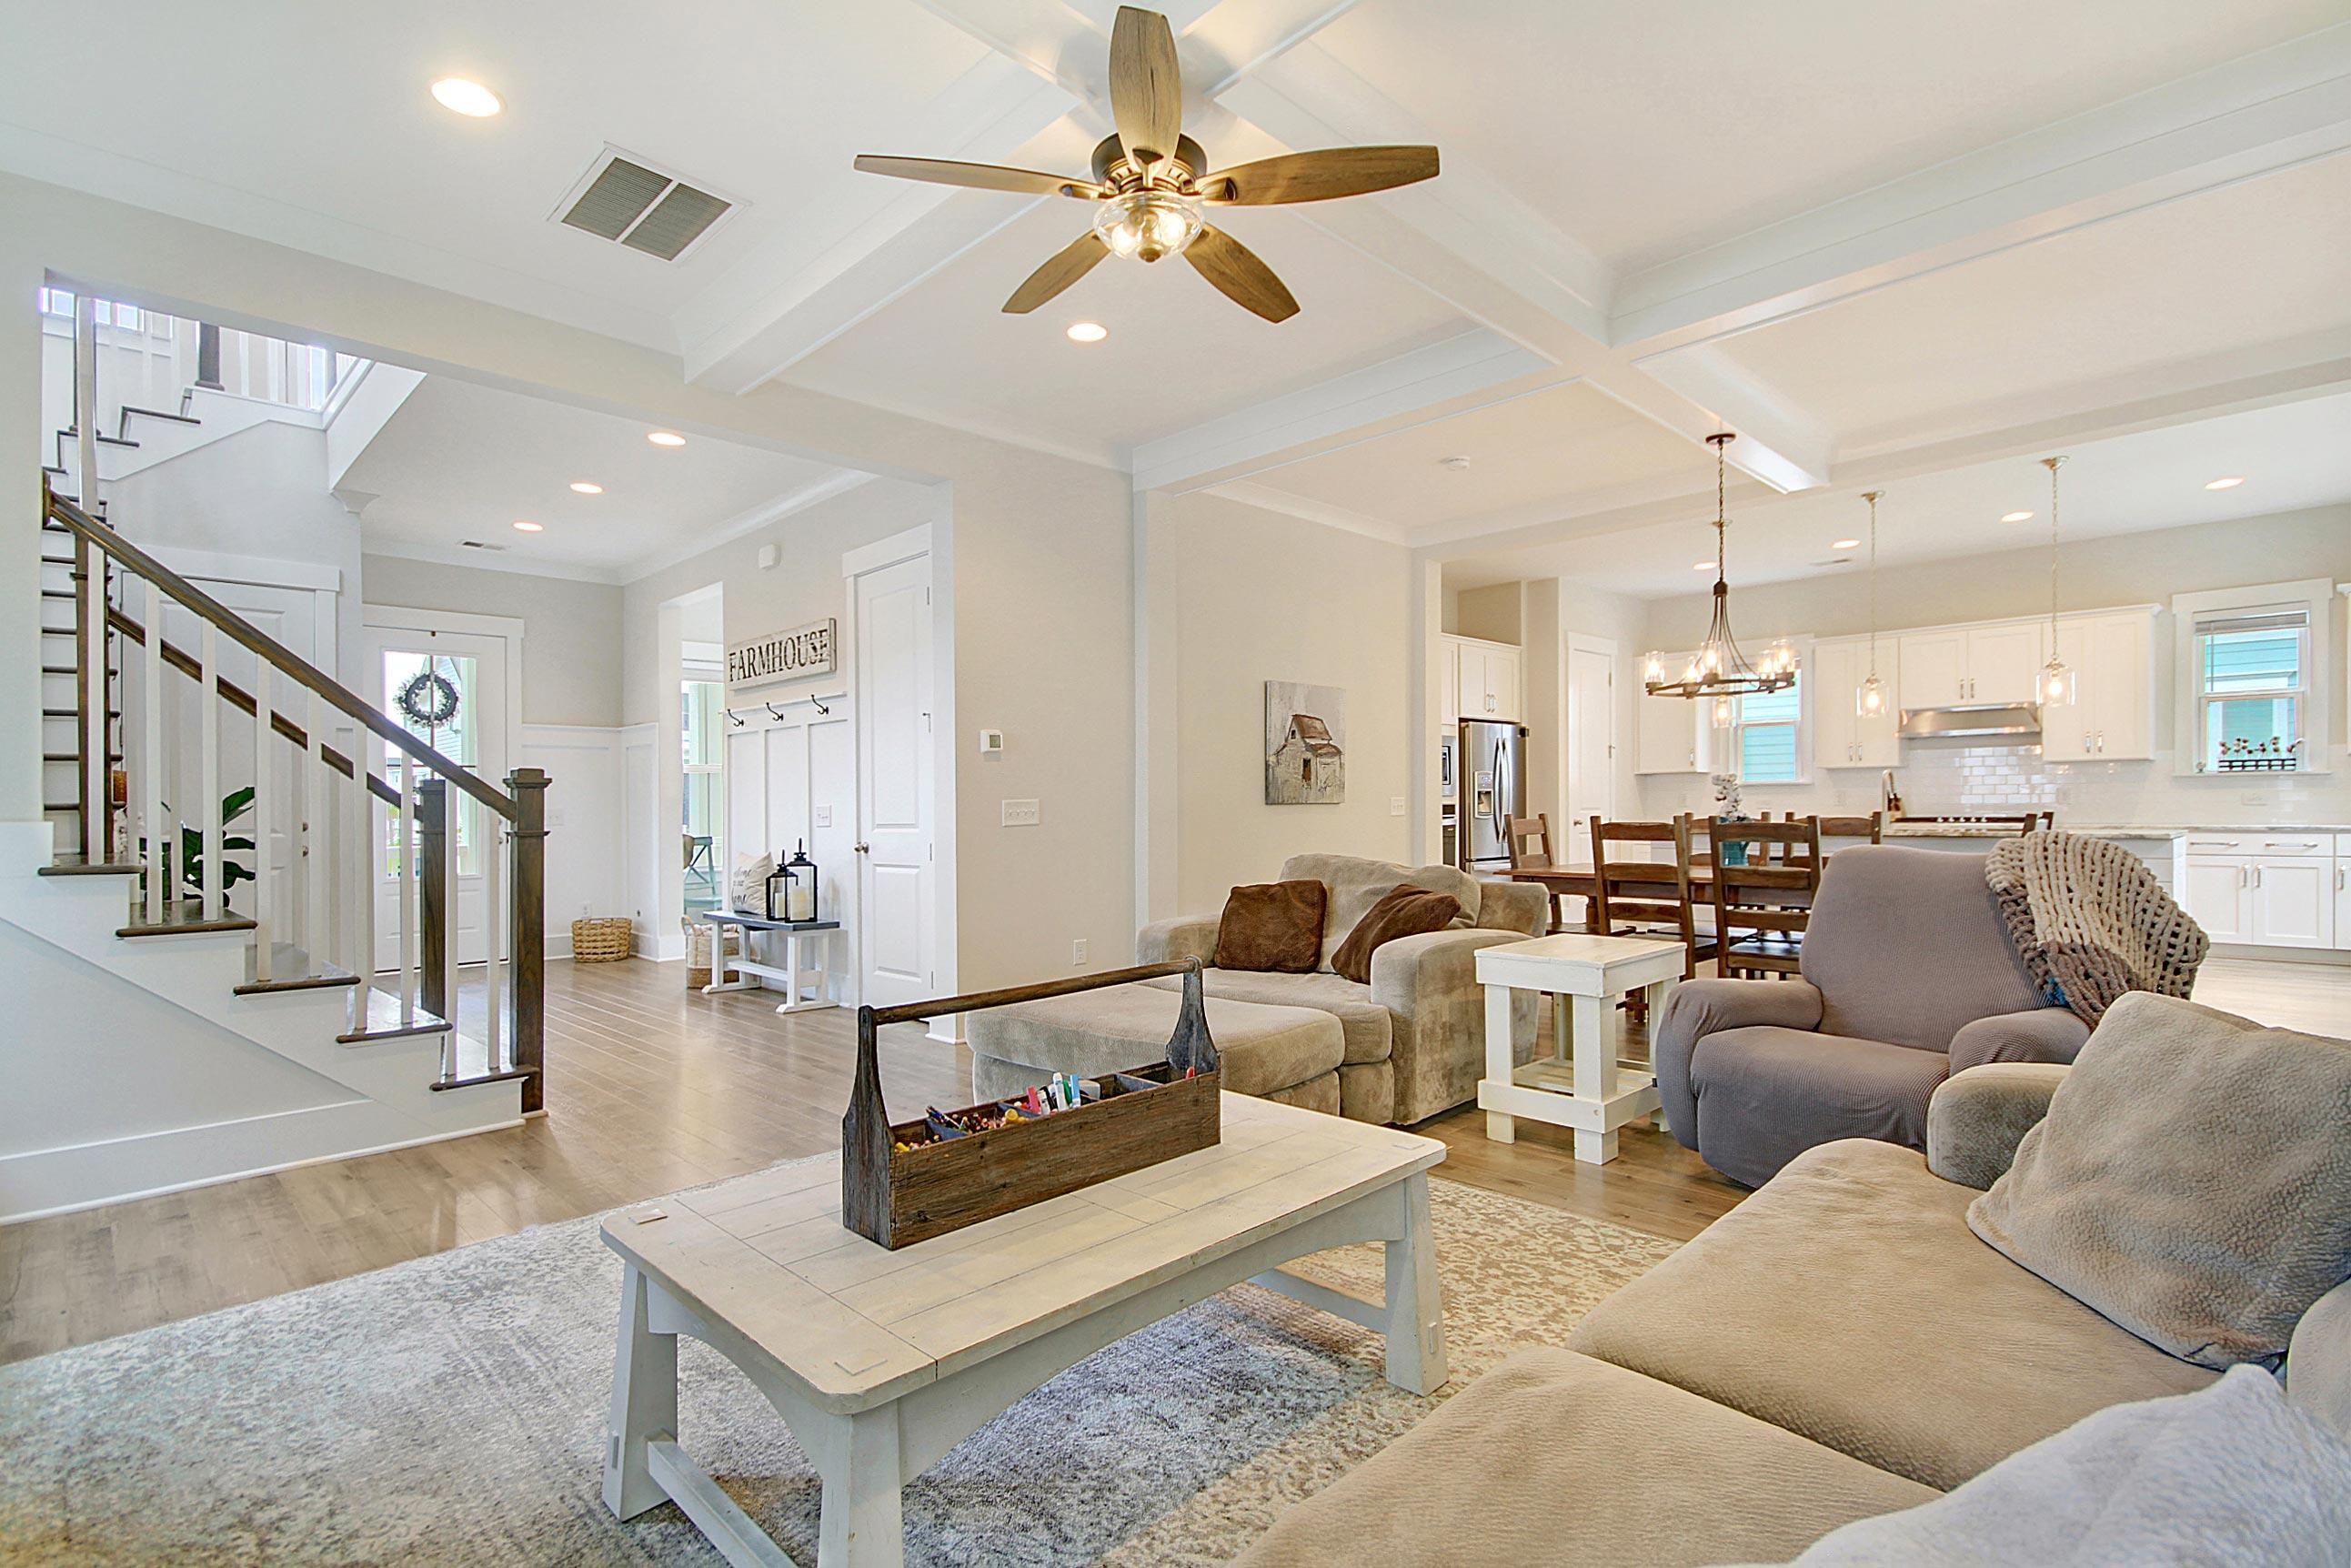 Stratton by the Sound Homes For Sale - 3542 Saltflat, Mount Pleasant, SC - 13